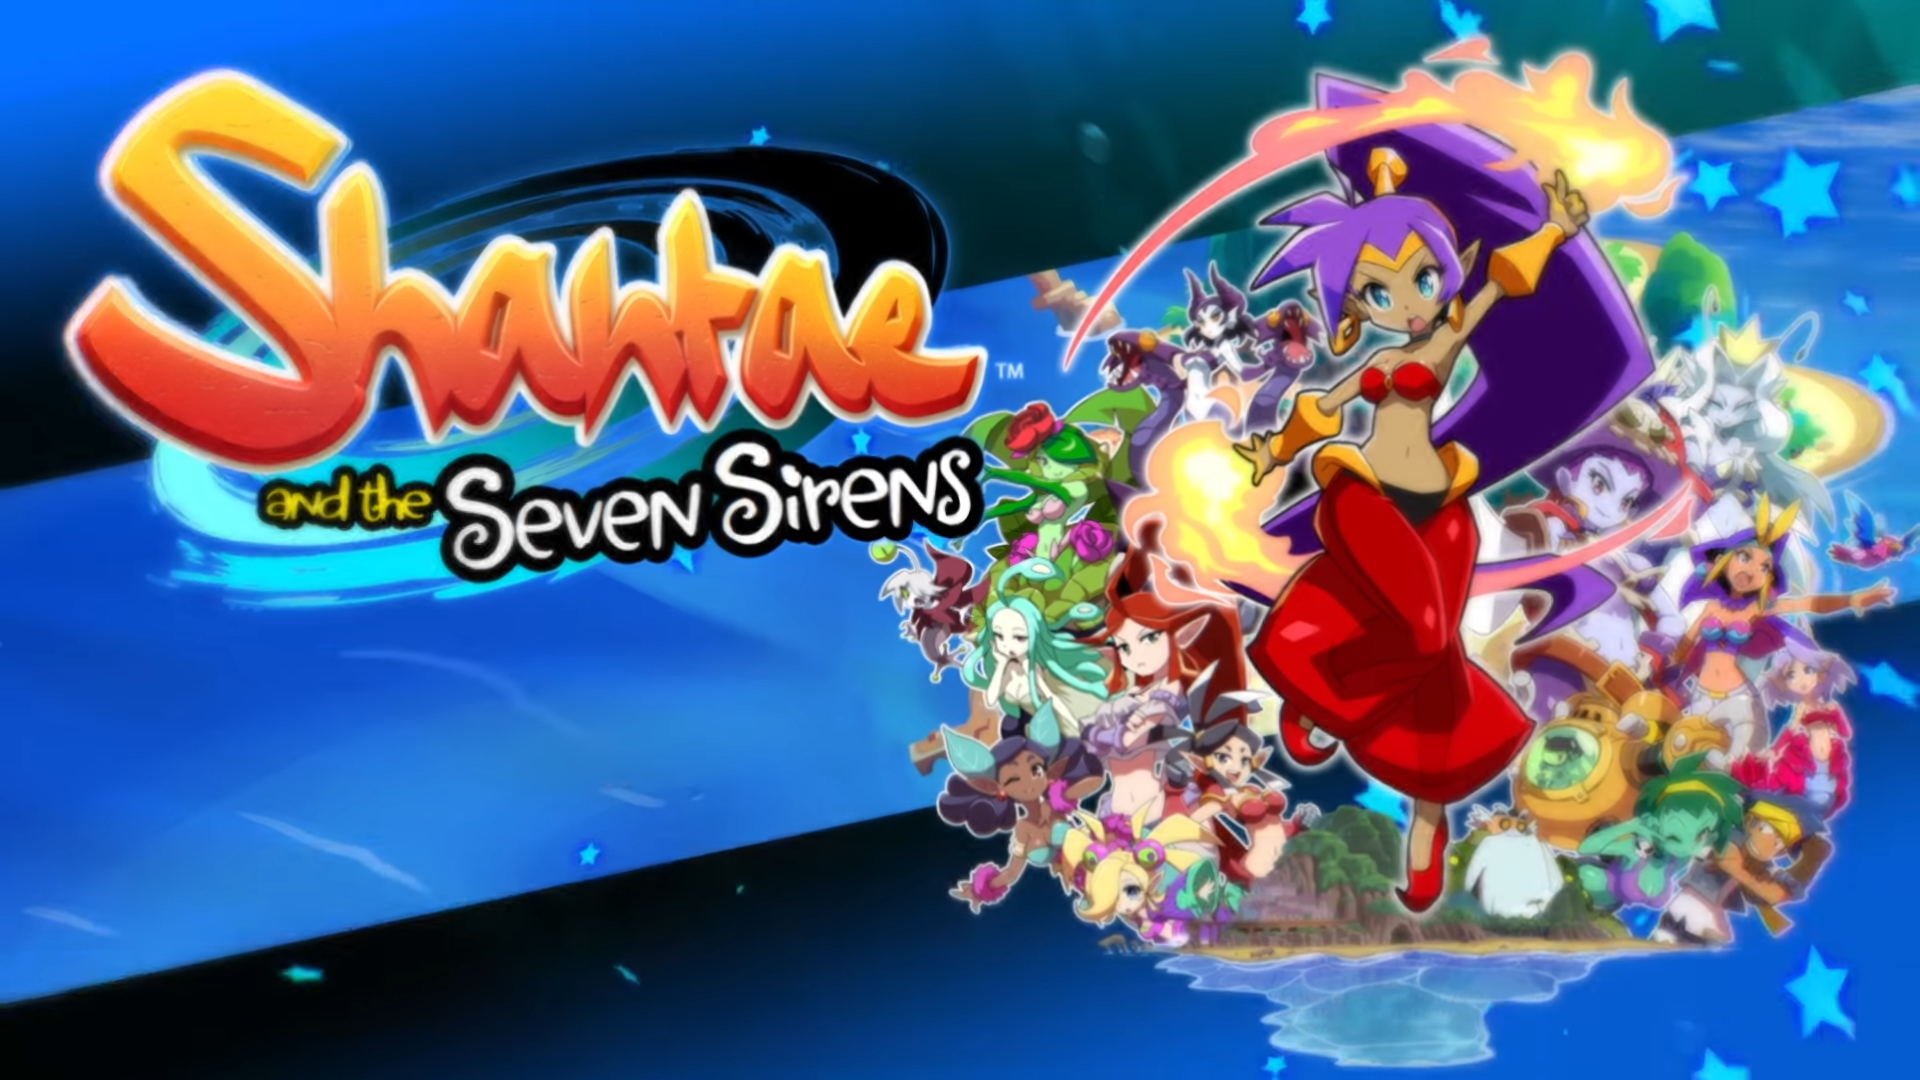 In arrivo Shantae and the Seven Sirens su PS4, Xbox One, PC e Switch